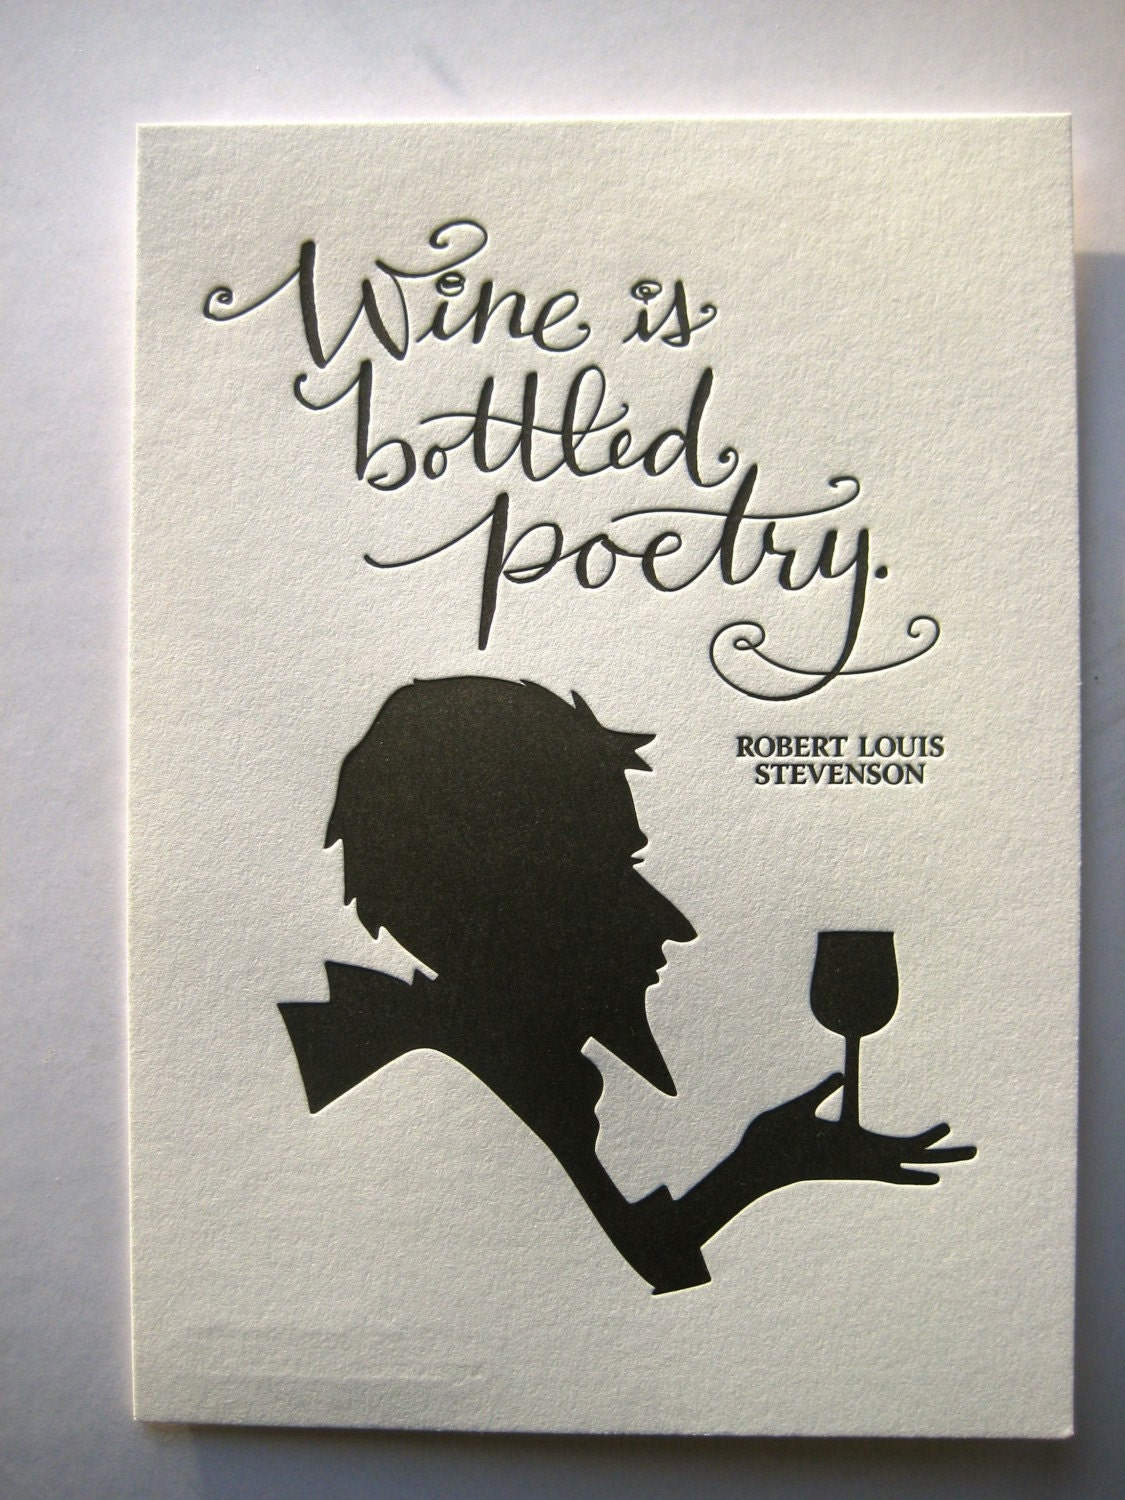 robert louis stevenson essay on falling in love Robert louis balfour stevenson (13 november 1850 – 3 december 1894) was a scottish novelist, poet, essayist and travel writer his best-known books include treasure.